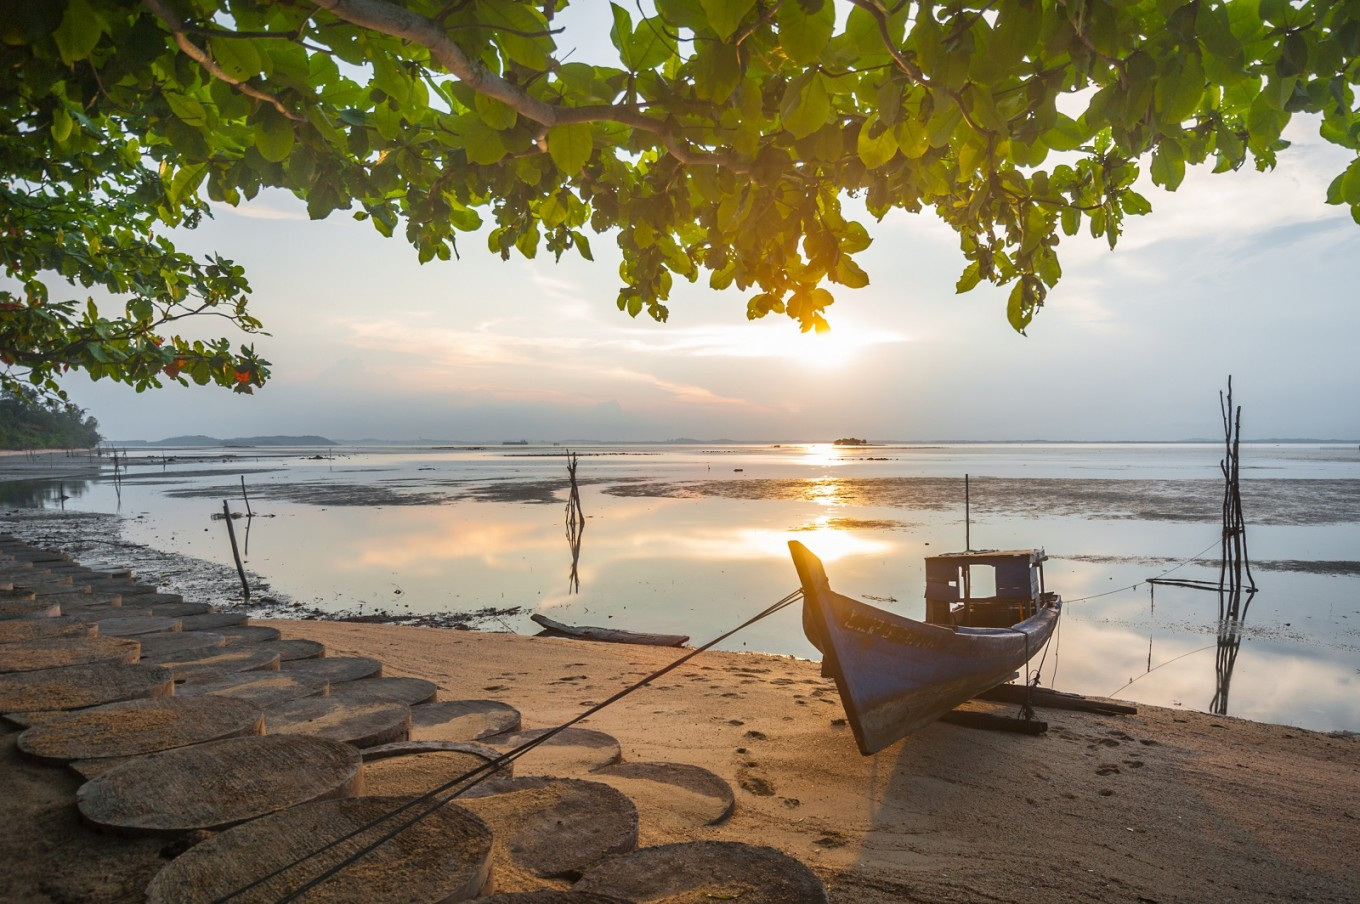 Vacation nation: Indonesia adds four more days to 2020 public holidays